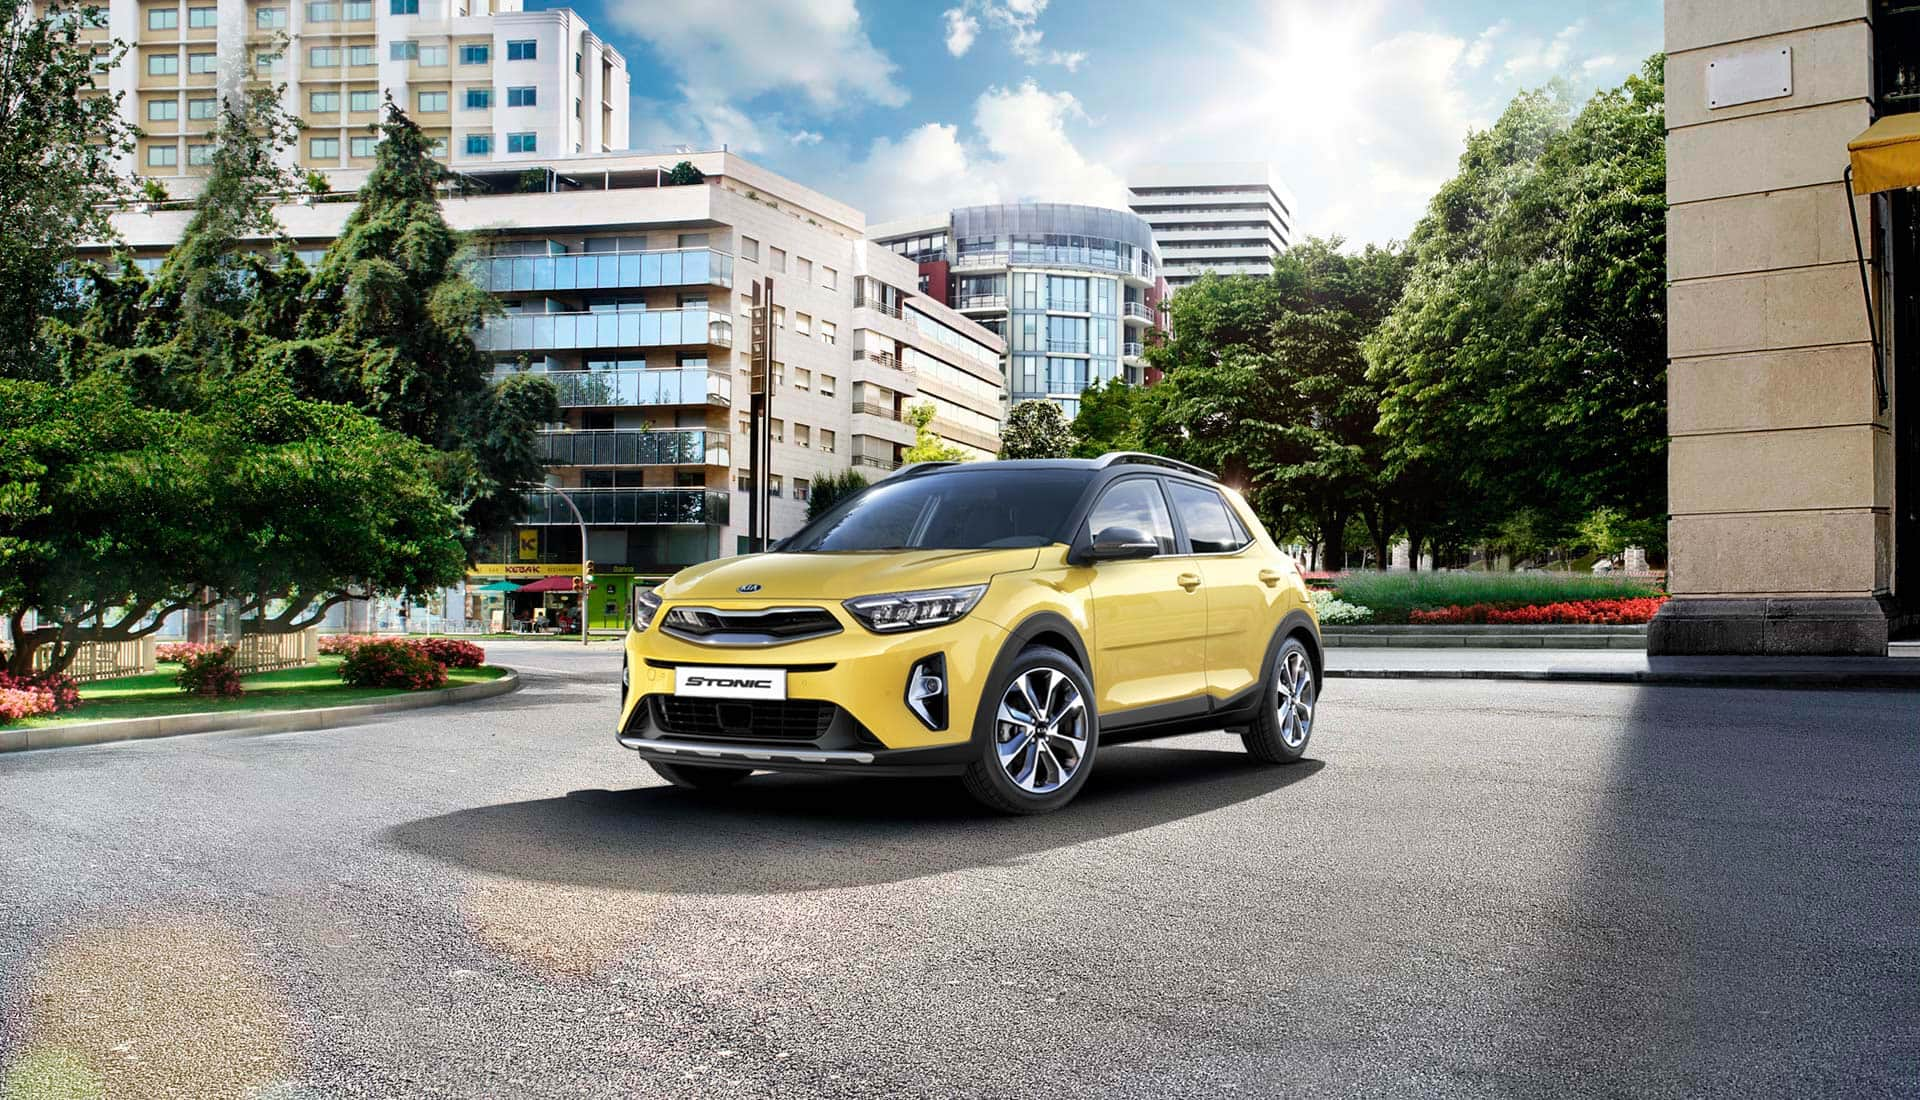 The new Kia Stonic exterior